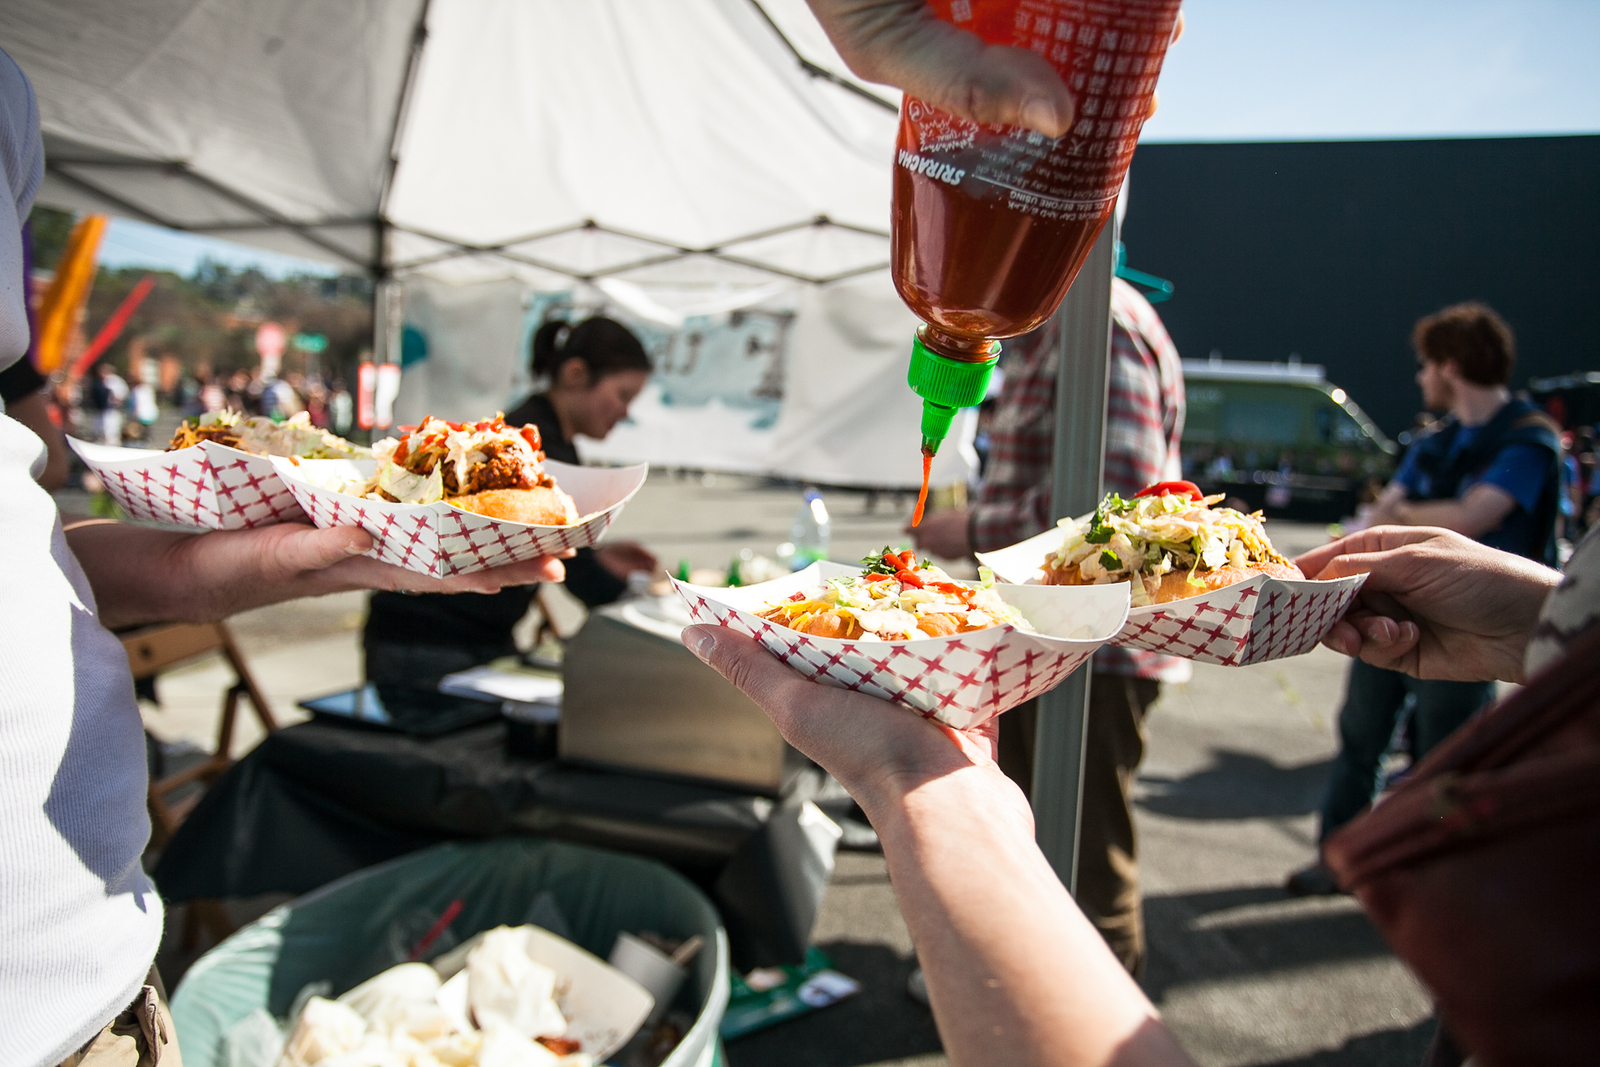 The Mobile Food Rodeo started out one September afternoon with 25 food trucks in a small parking lot in Seattle on a cool September afternoon.  In just three years, it has grown into the largest food truck food festival in the United States showcasing over 100 food trucks annually.The fun kick off Saturday, May 3rd for our Cinco De Mayo block party and taco truck showdown, TACO LIBRE.  In 2013, the Mobile Food Rodeo festivals attracted over87,000 people in just three daysof operation in some of Seattle's most desirable neighborhoods like Capitol Hill, South Lake Union and Fremont for an alfresco, laid, back irreverent food and beverage experience.  It has helped support over 200 small businesses by offering an affordable market place, as well as serving as an incubator for entrepreneurs to share their culinary talents within their respective communities.